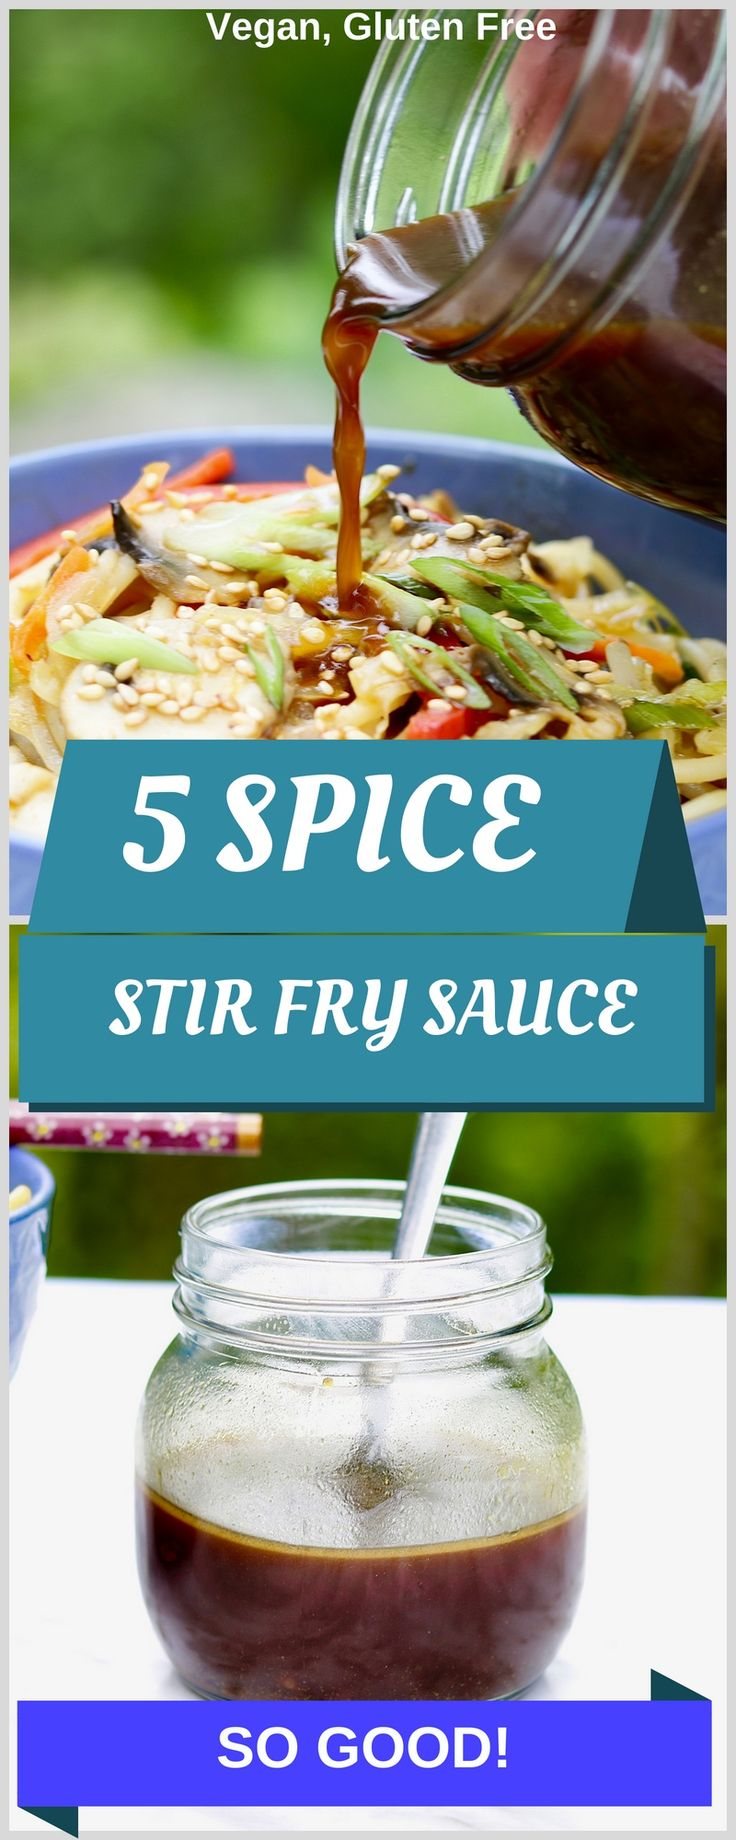 125 best bumbu images on Pinterest   Spices, Exotic food and Marmalade